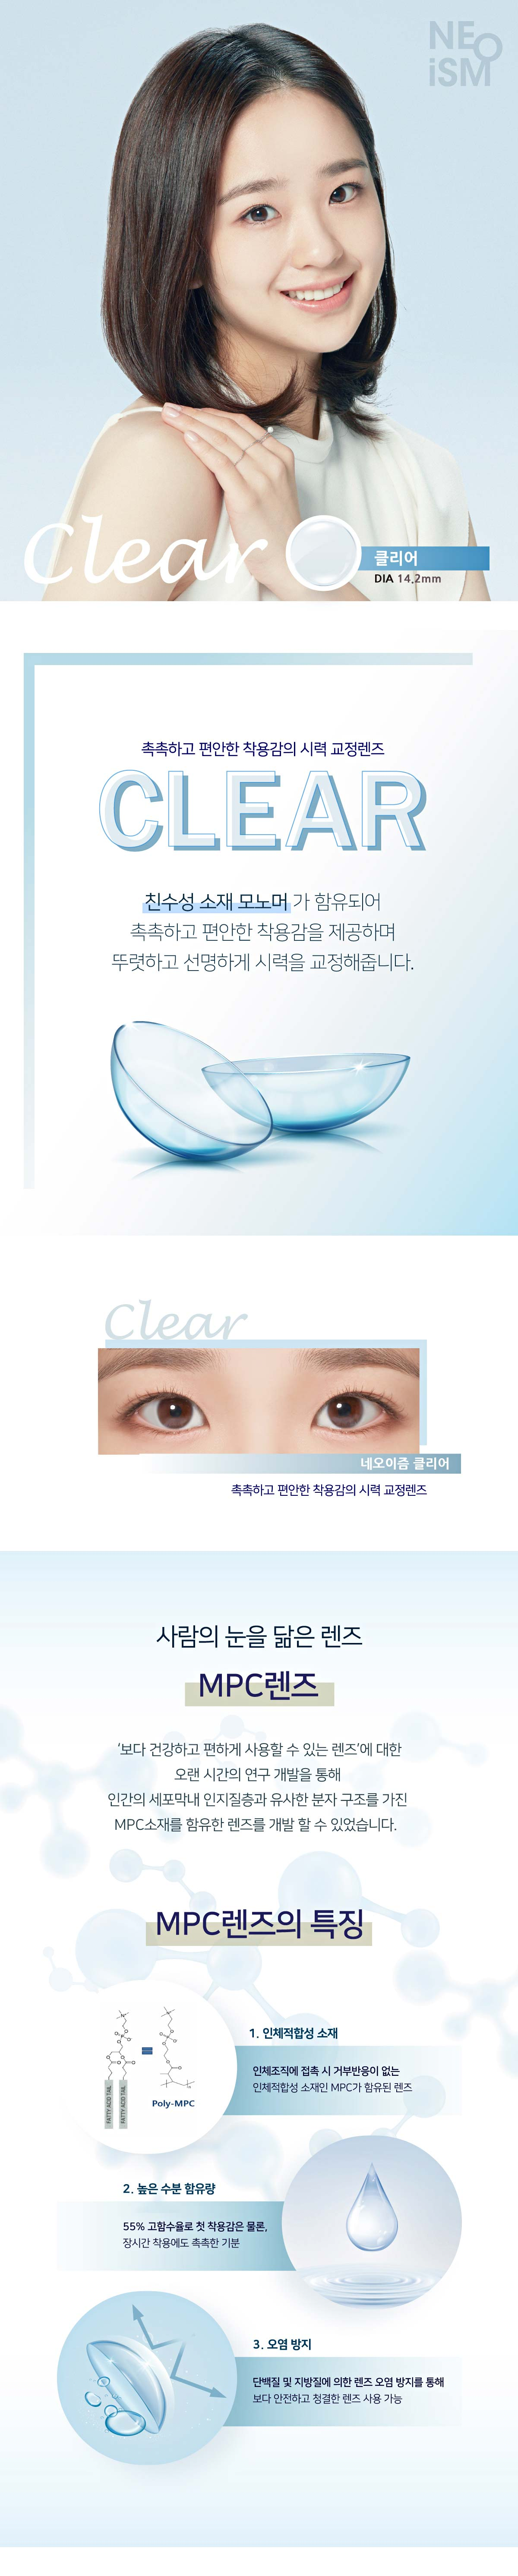 neo-ism-1day-clear-korean-lenses-contacts1.jpg